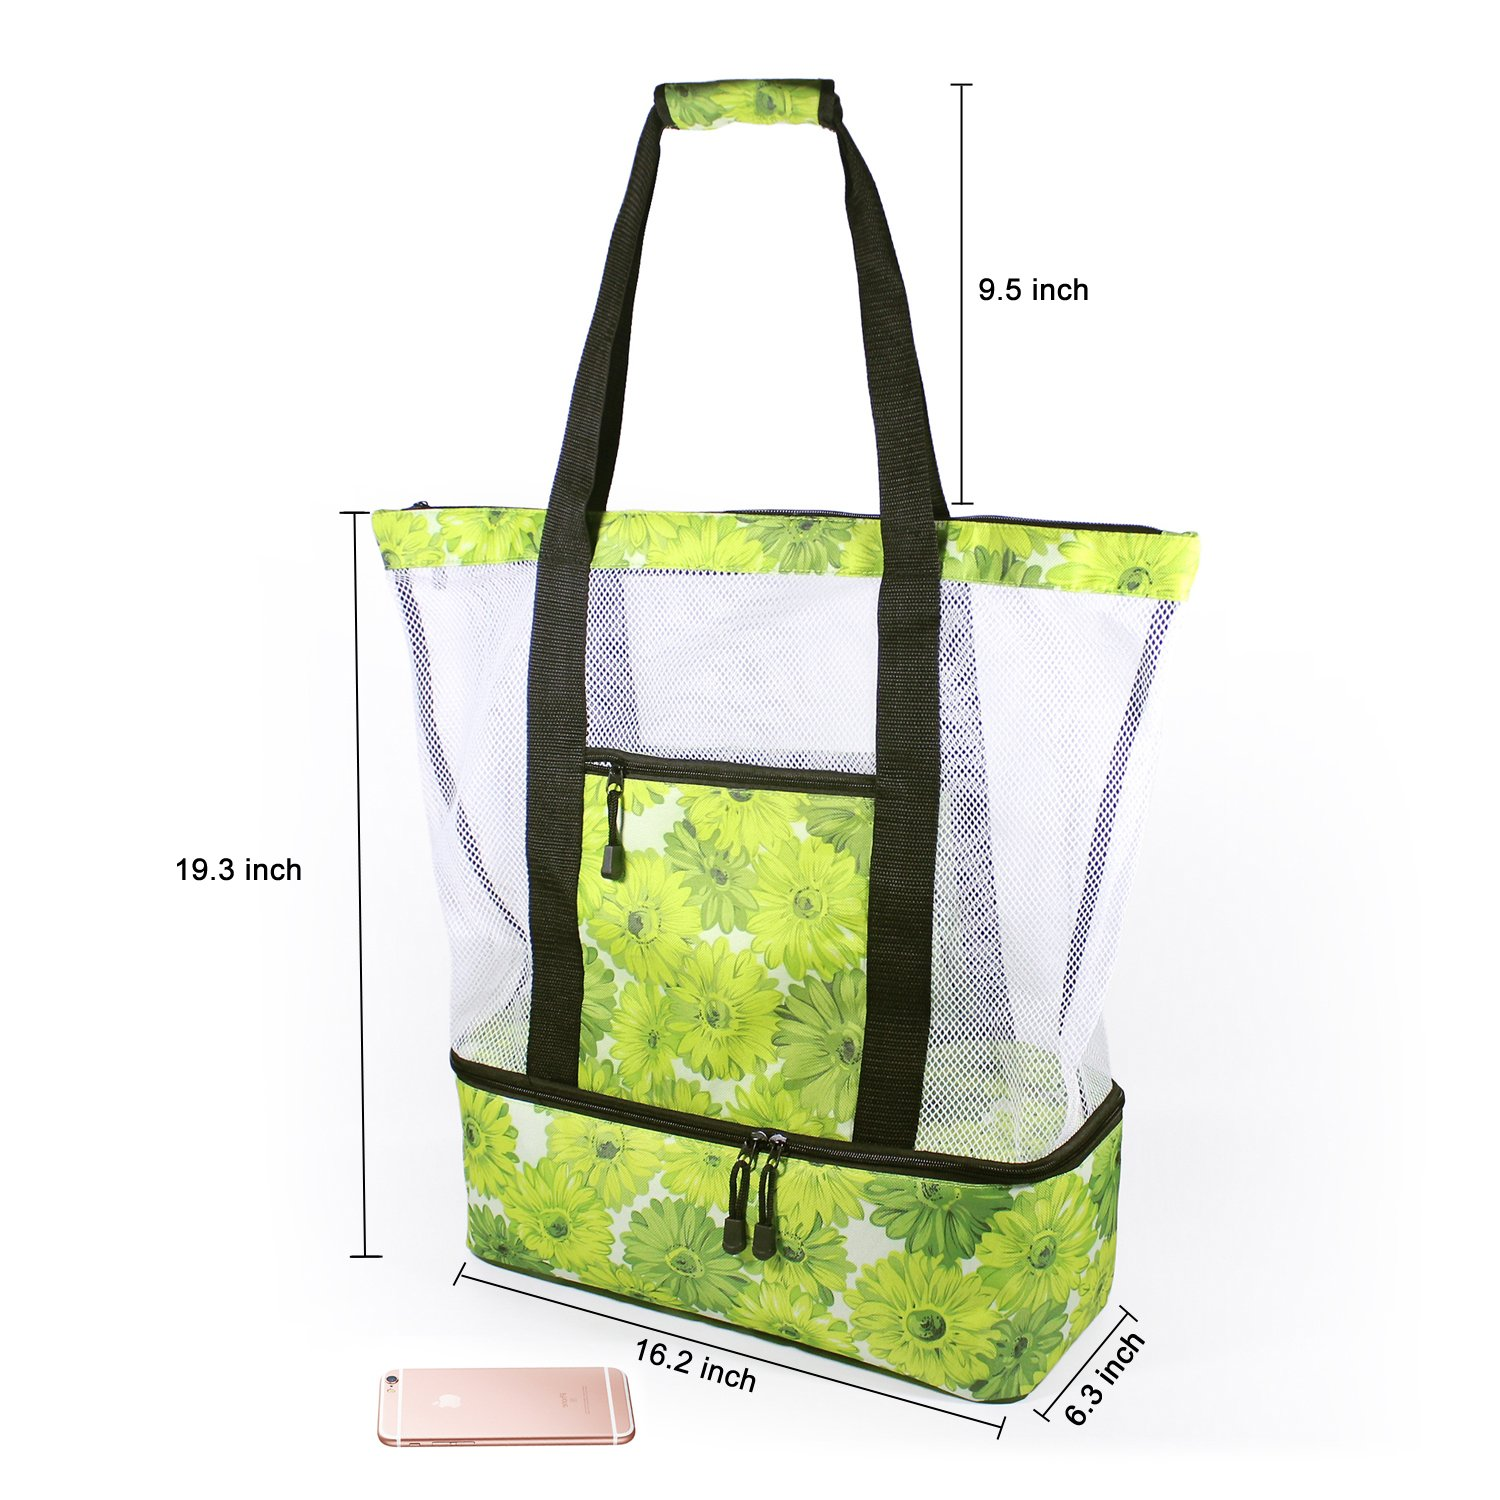 Rotanet Mesh Beach Tote Bag-Zipper Top with Insulated Picnic Cooler Extra Large (Green Flower) by ROTANET (Image #7)